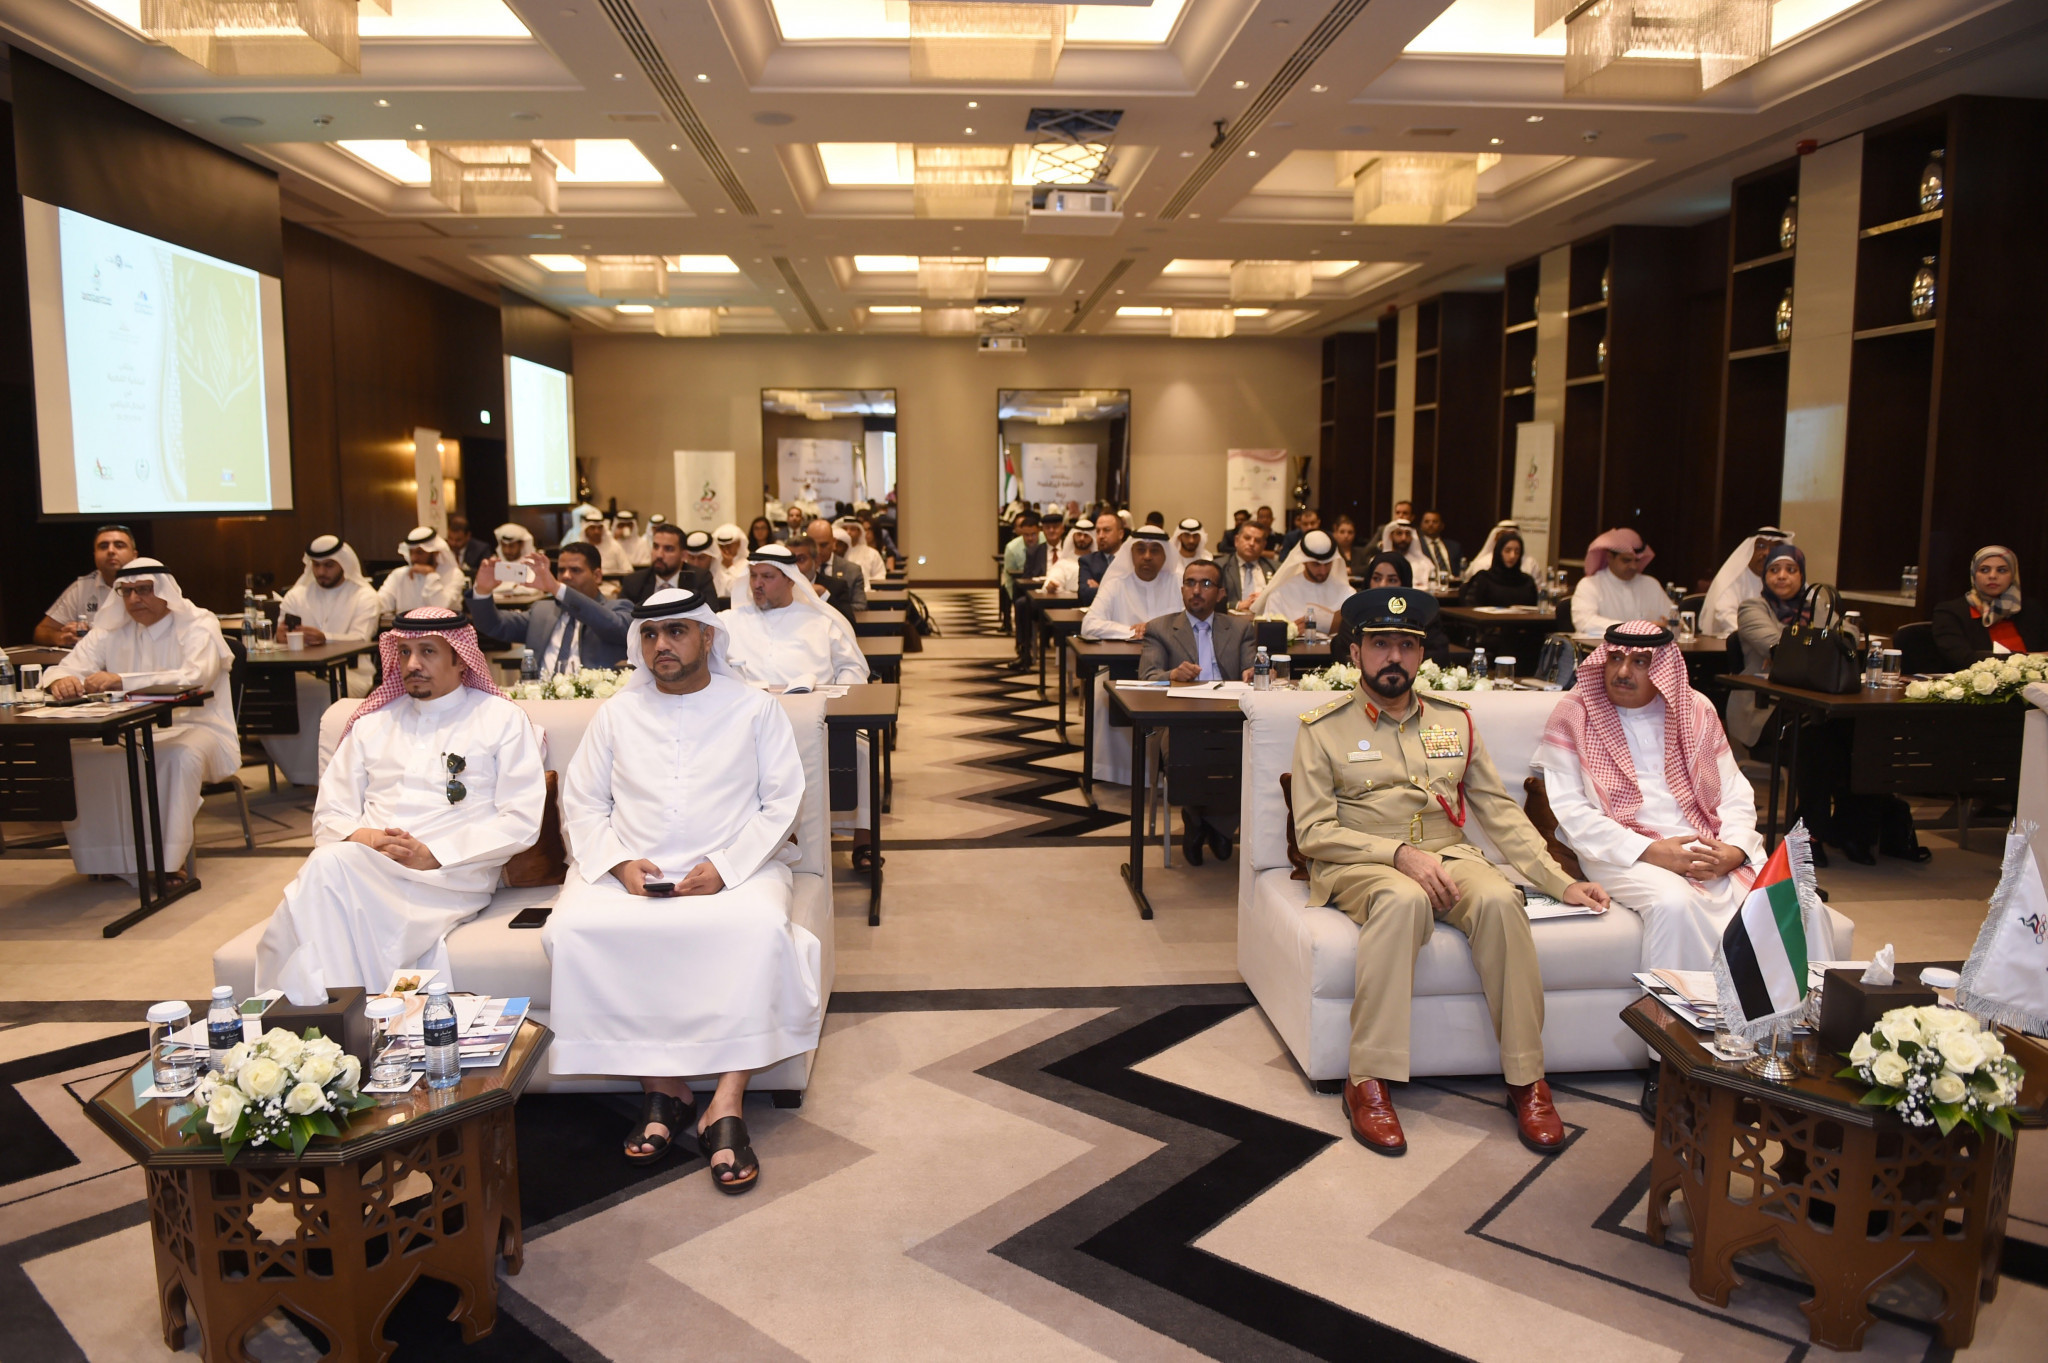 A forum was held to discuss issues around intellectual property in sport ©UAE NOC